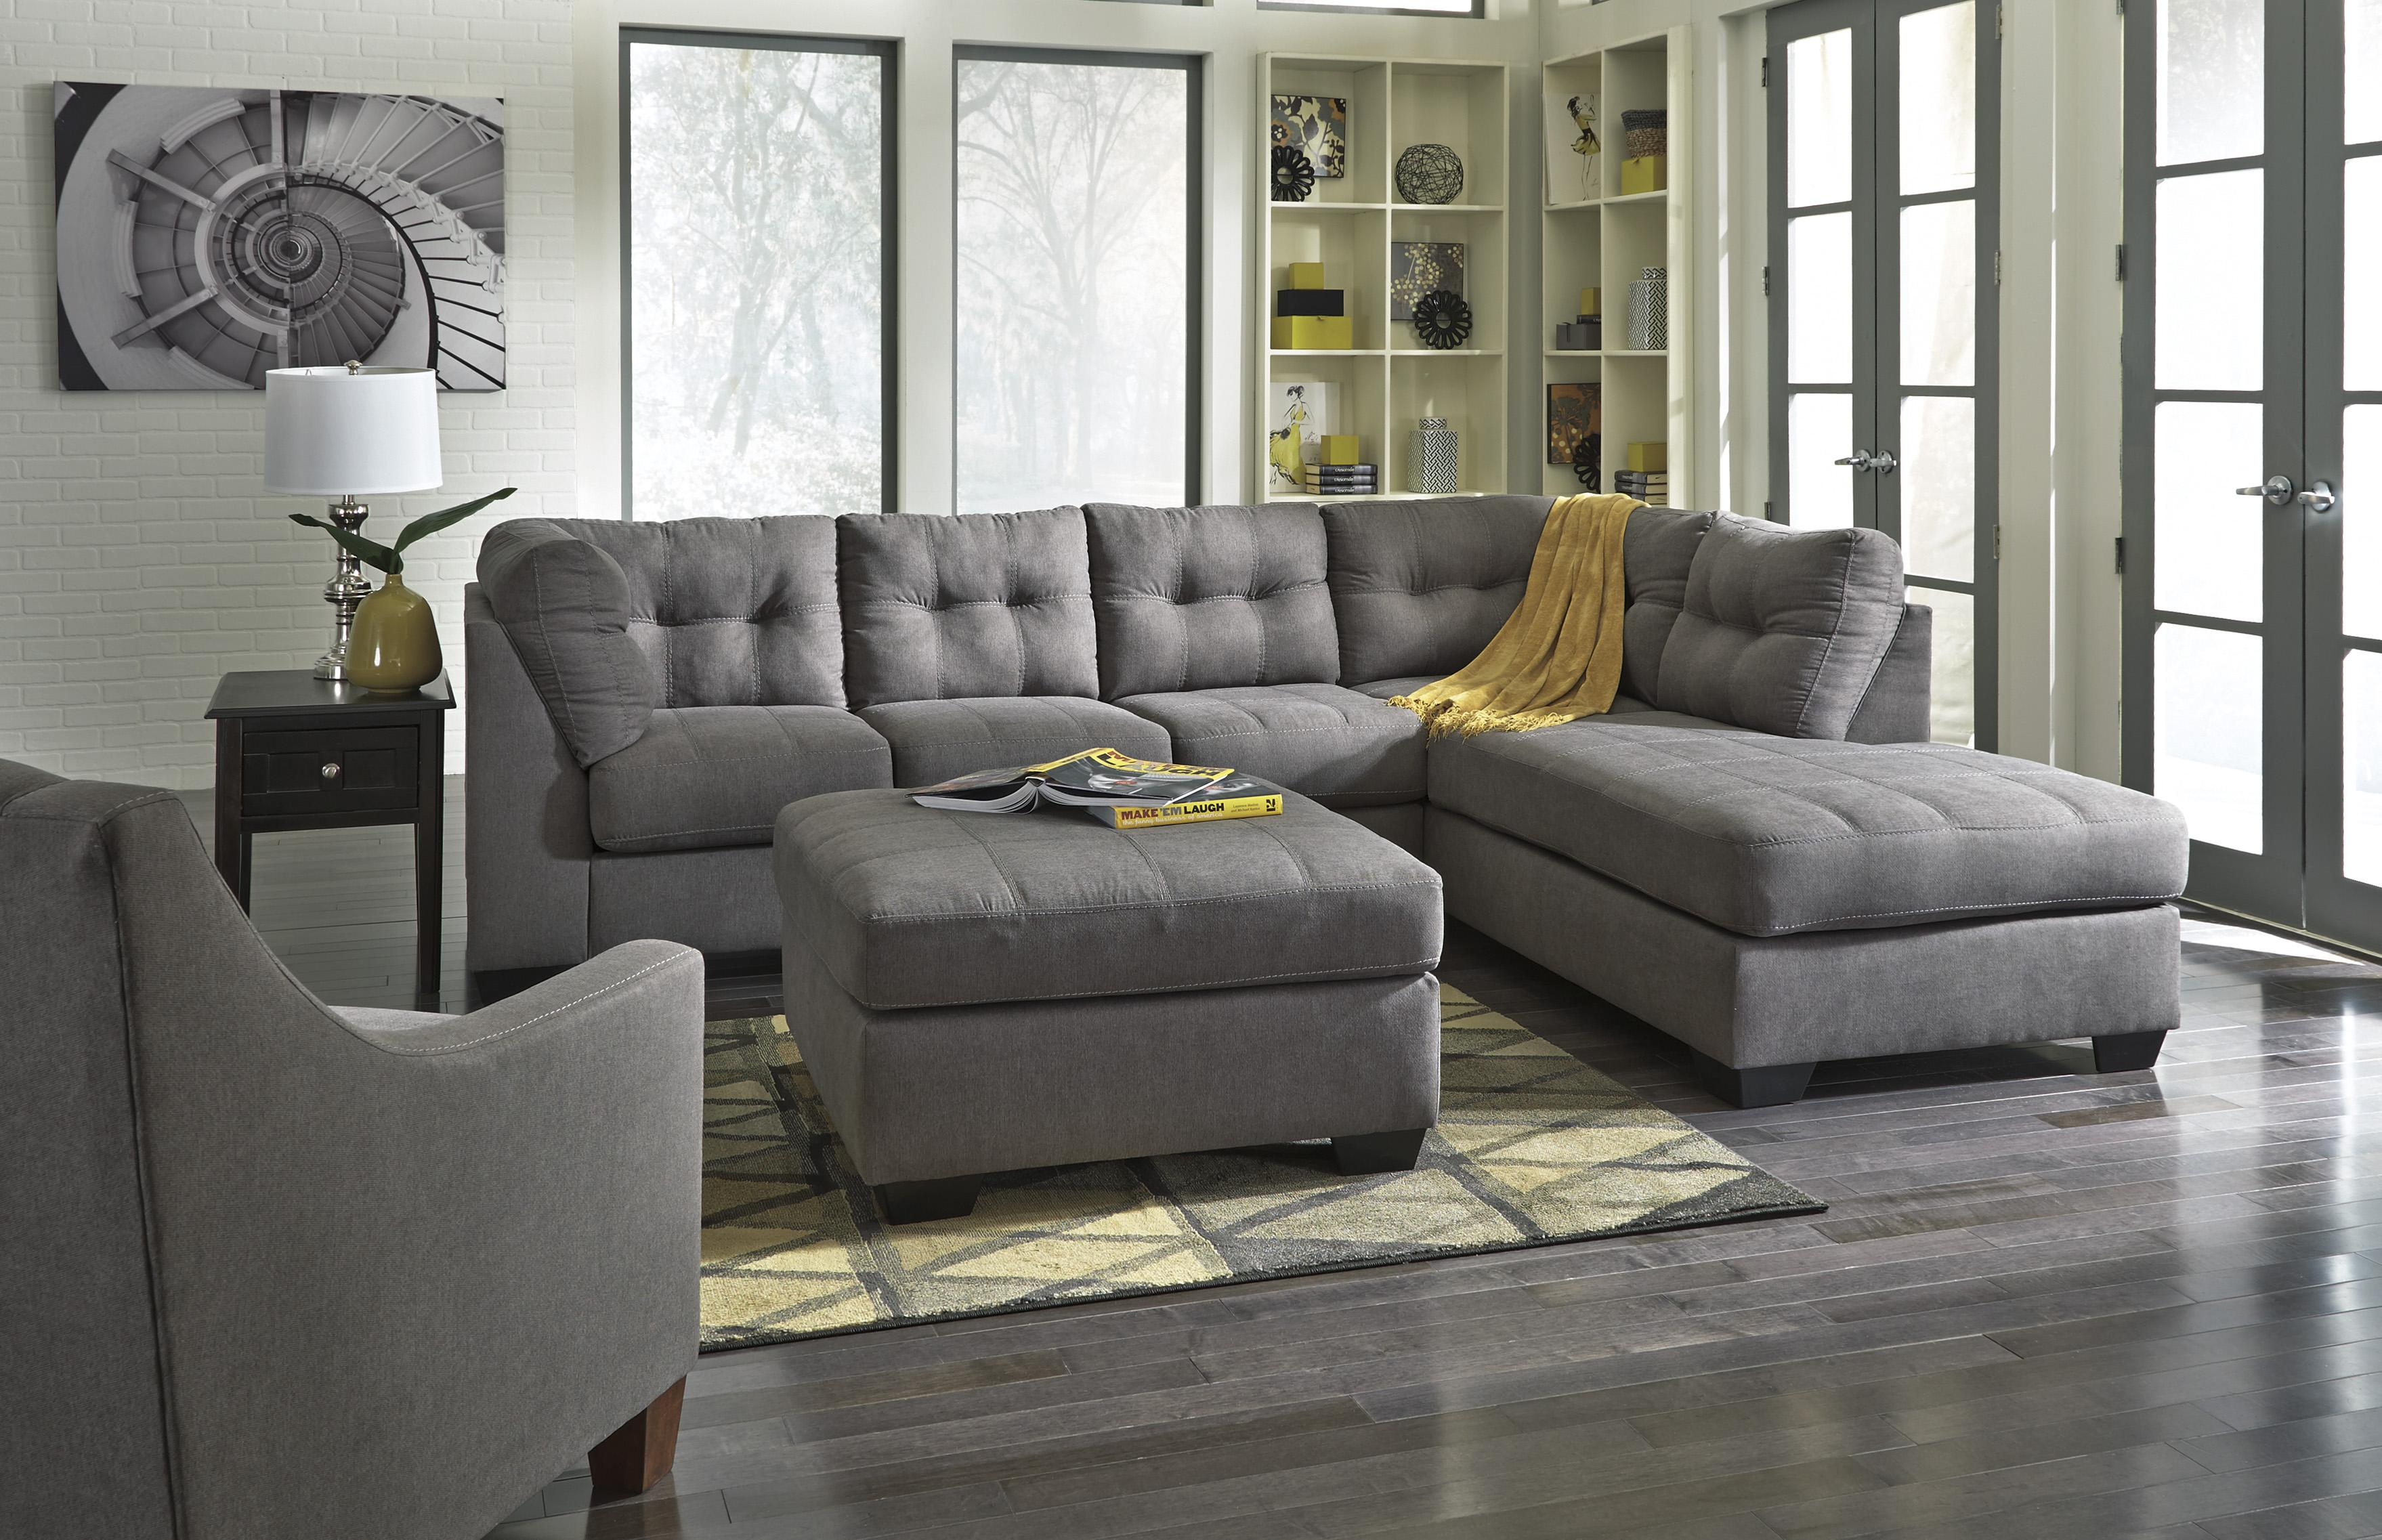 2 Piece Sectional with Right Chaise by Benchcraft